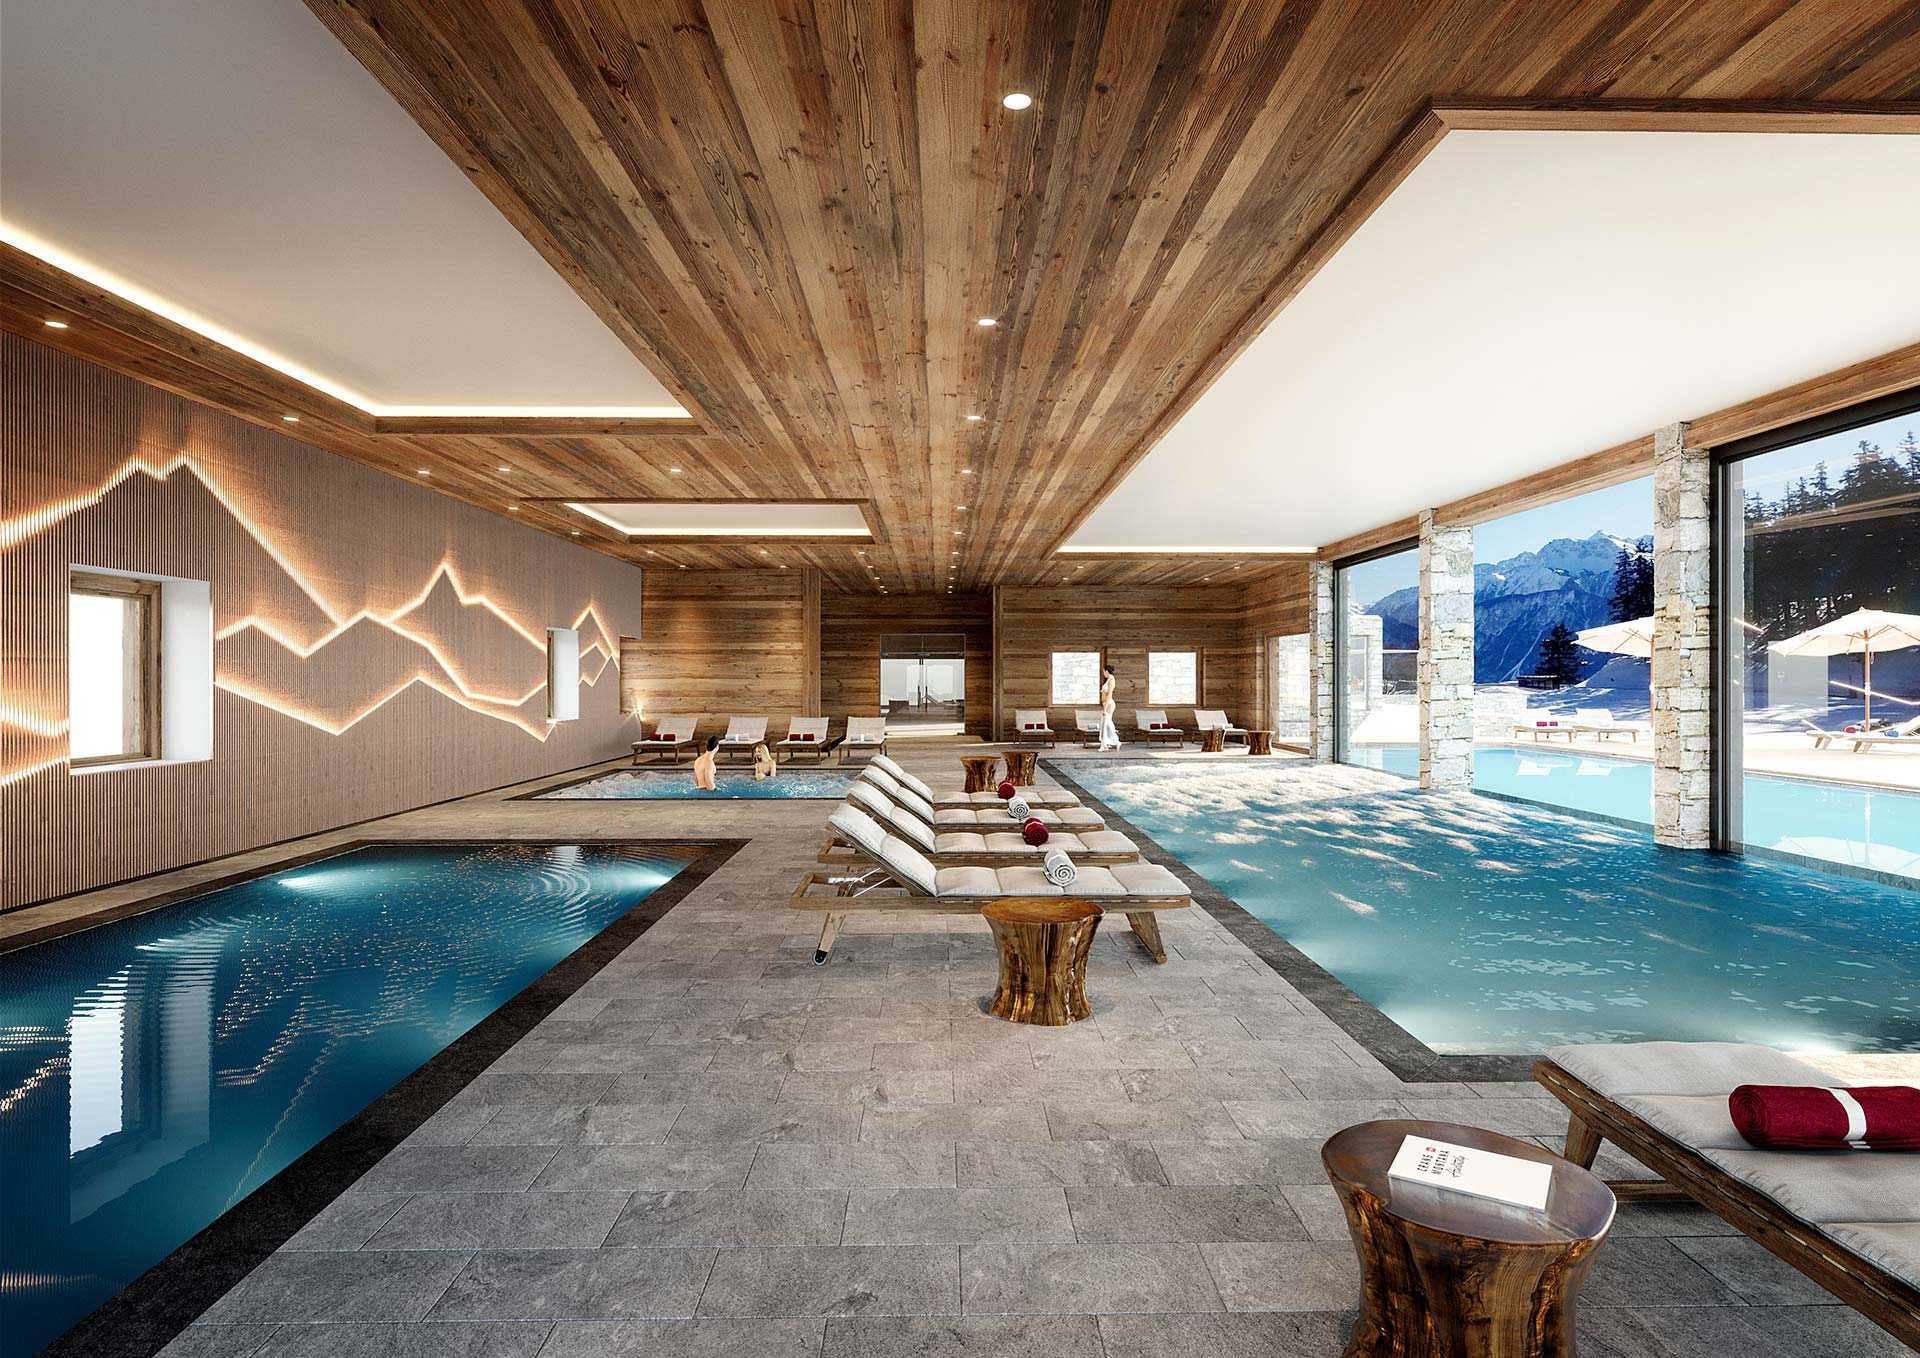 Render of a 3D hotel pool for a hotel-chalet project